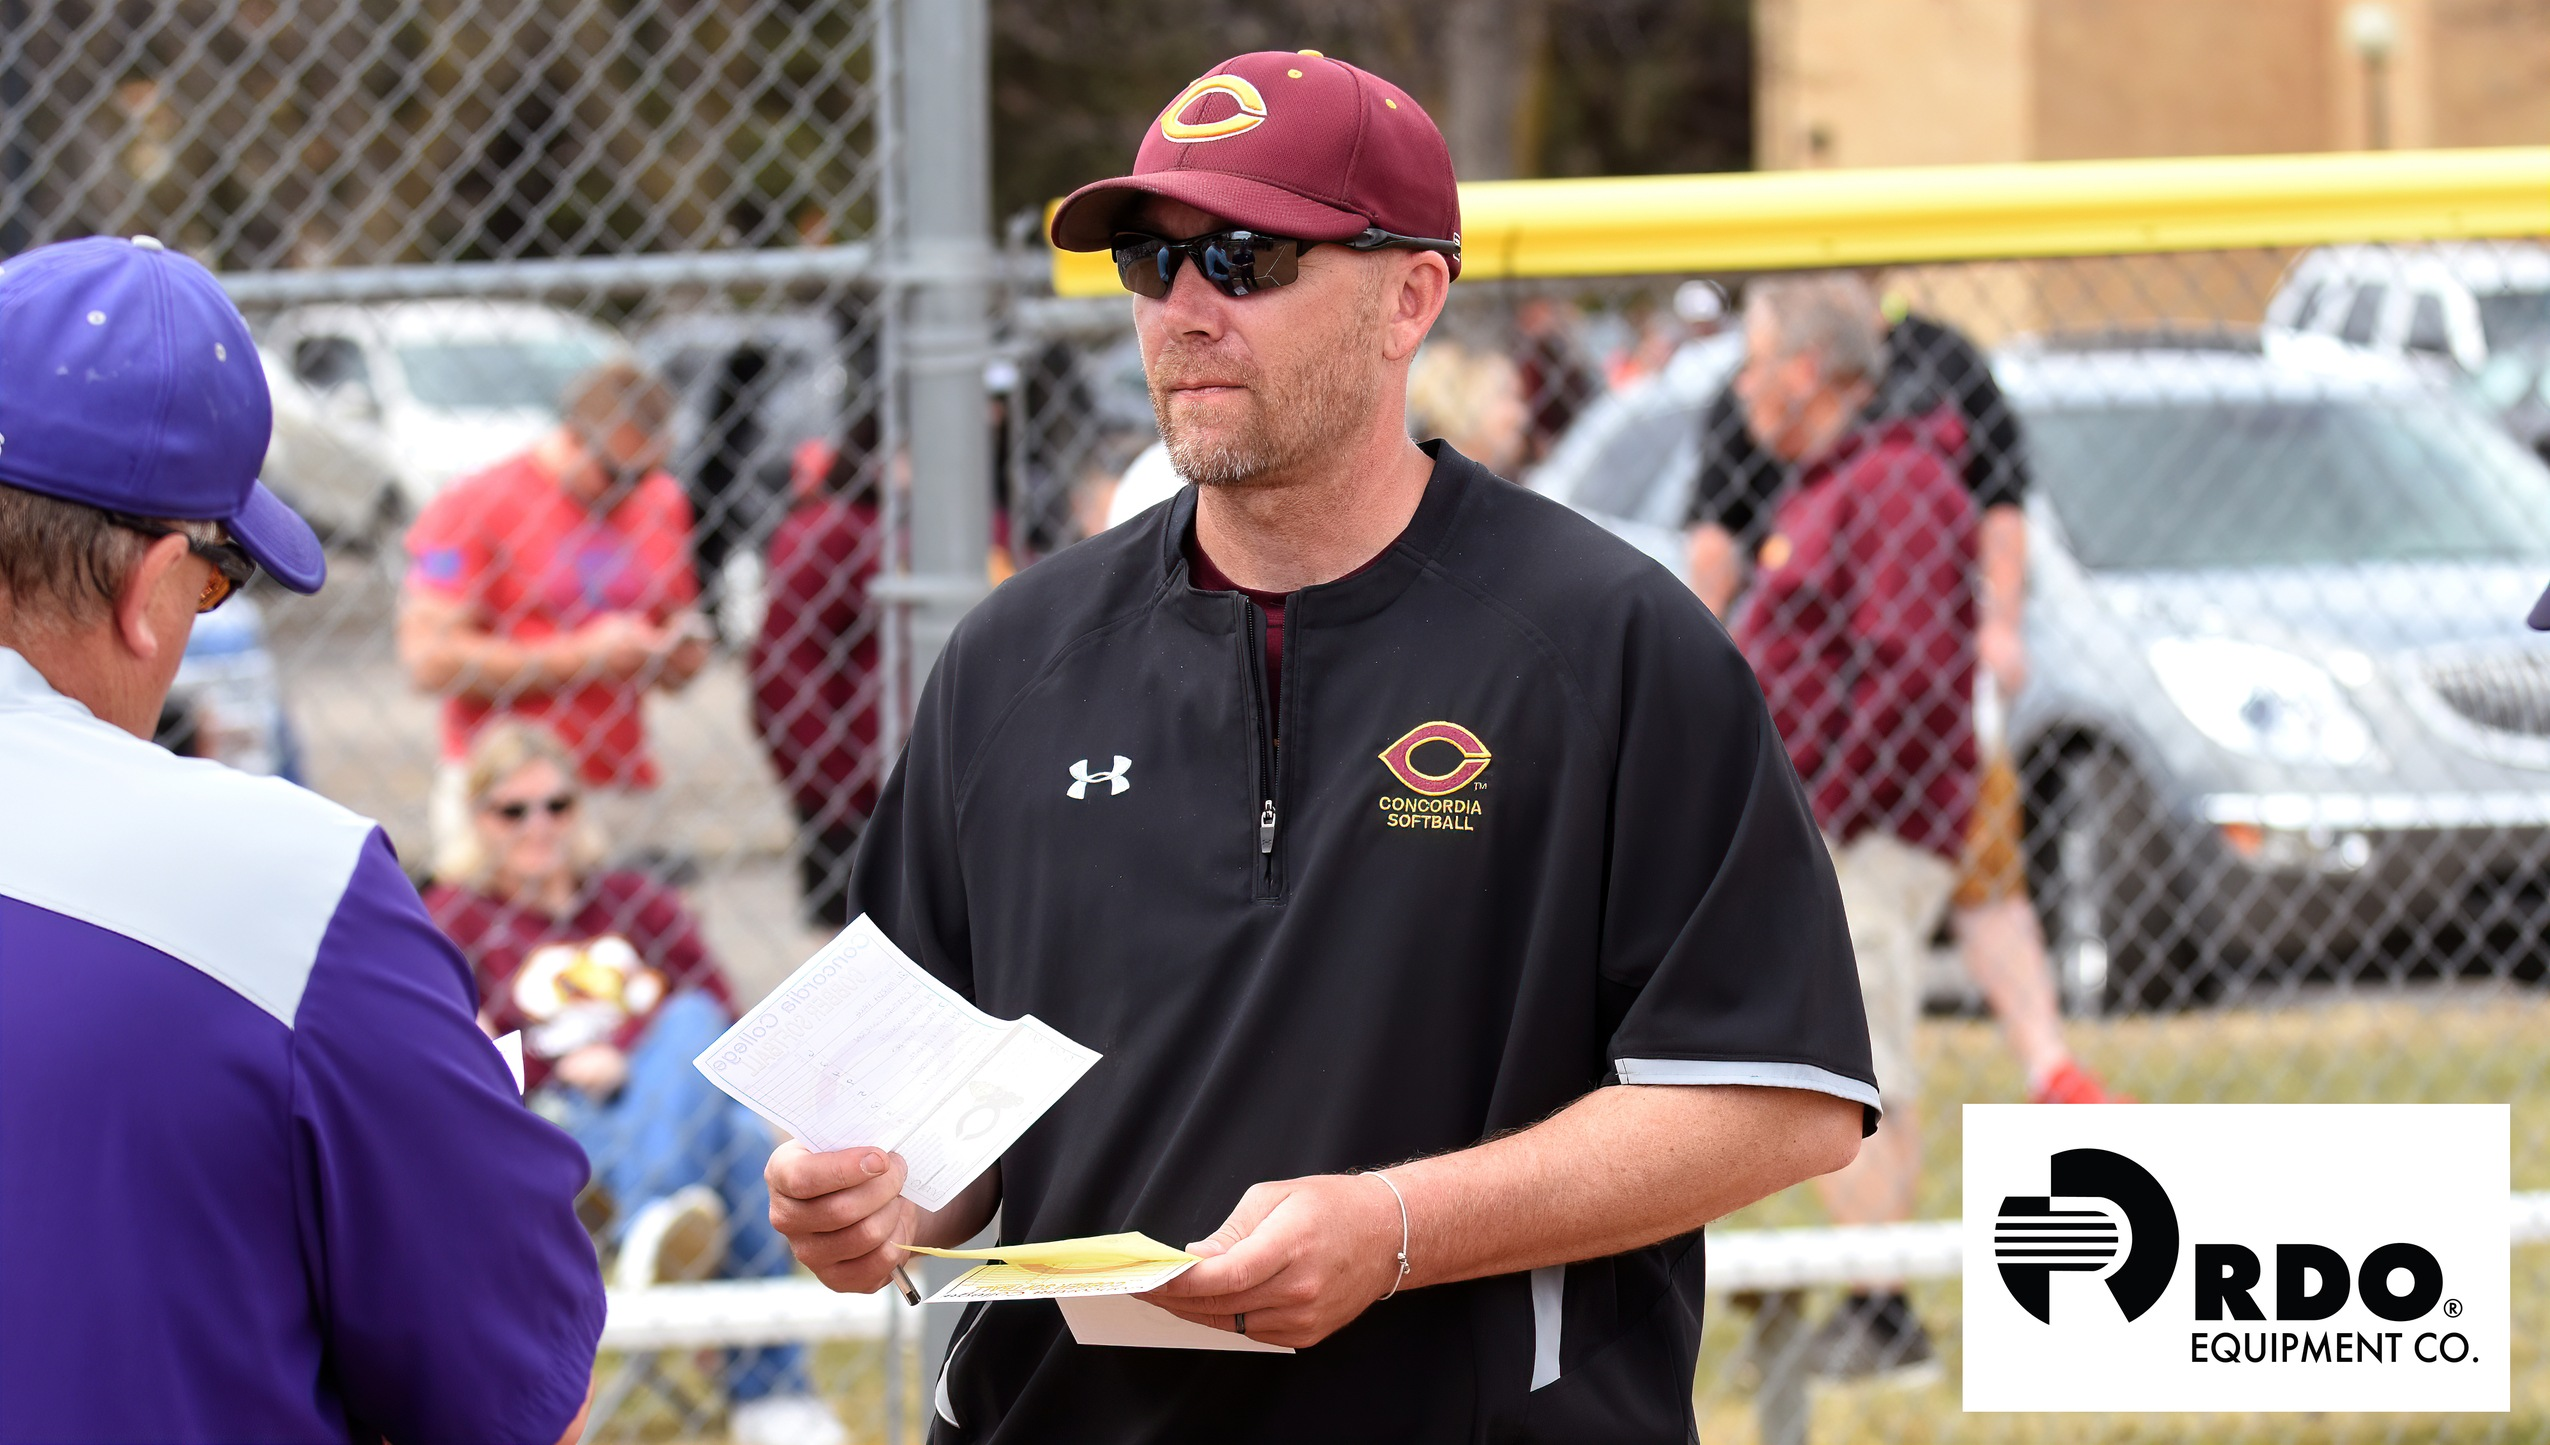 Head coach Chad Slyter won his 300th career game as a head softball coach on Thursday. The Cobbers two wins pushed his victory total to 301 which has amassed in his stints at Valley City State, Fargo Shanley and Concordia.